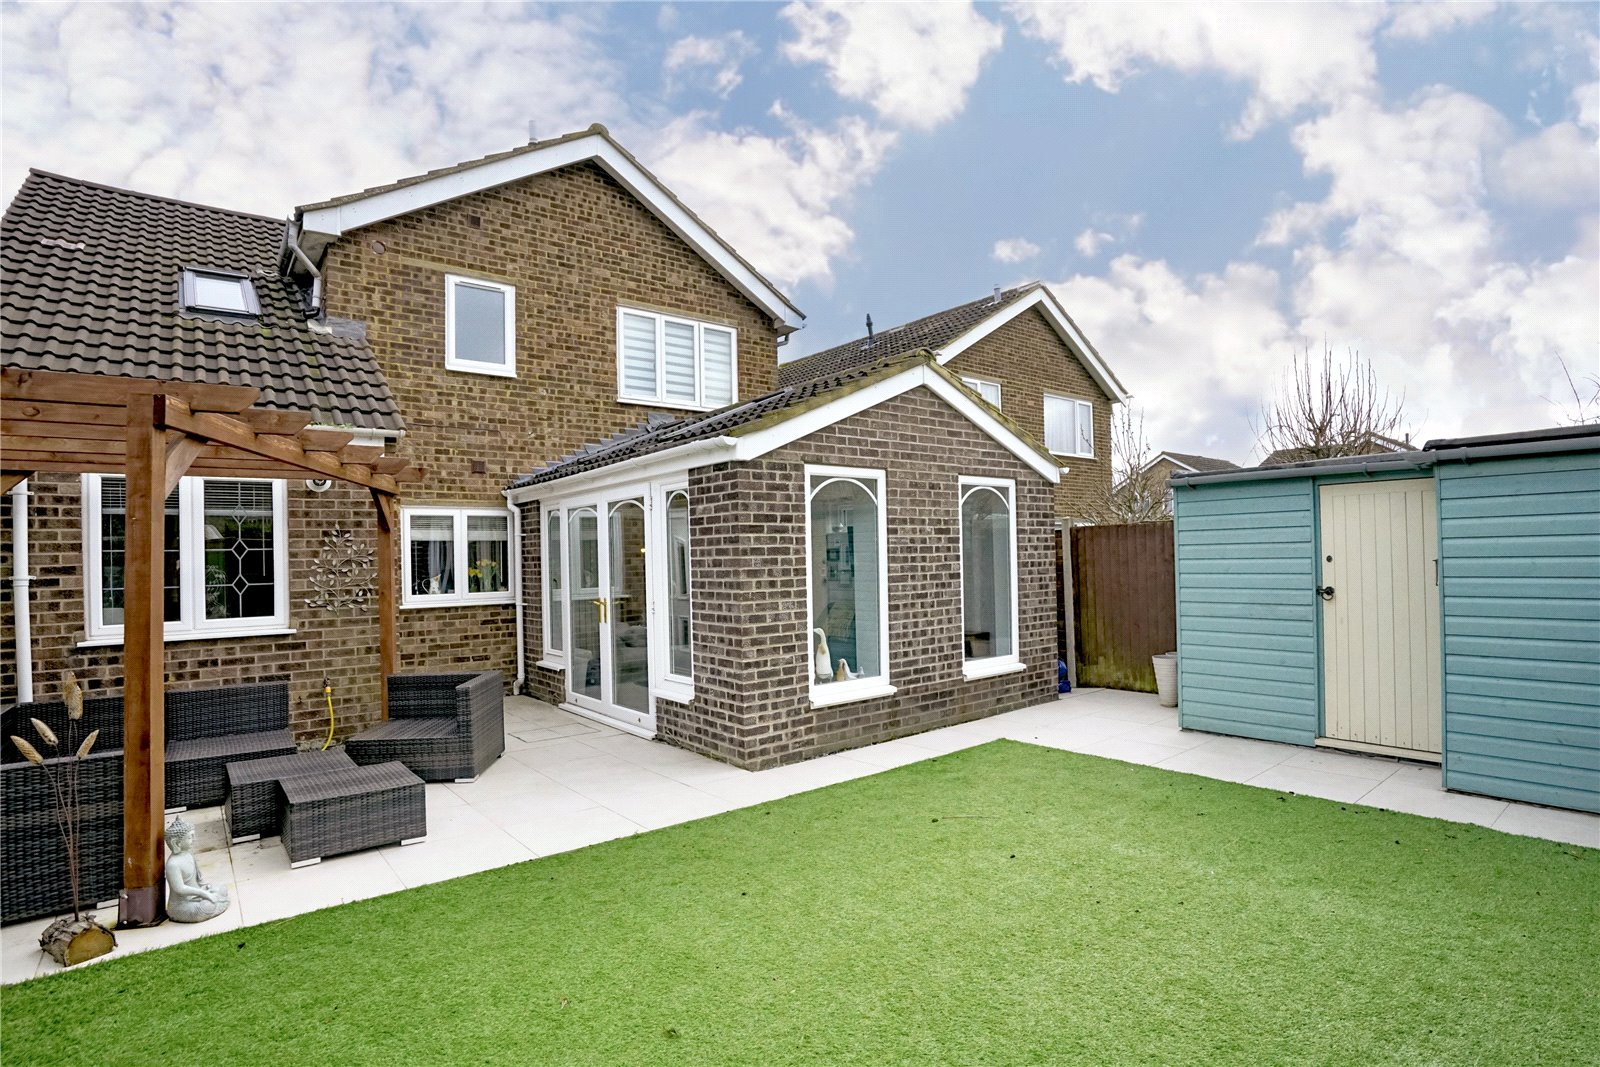 4 bed house for sale in Weston Court, Eaton Ford  - Property Image 14